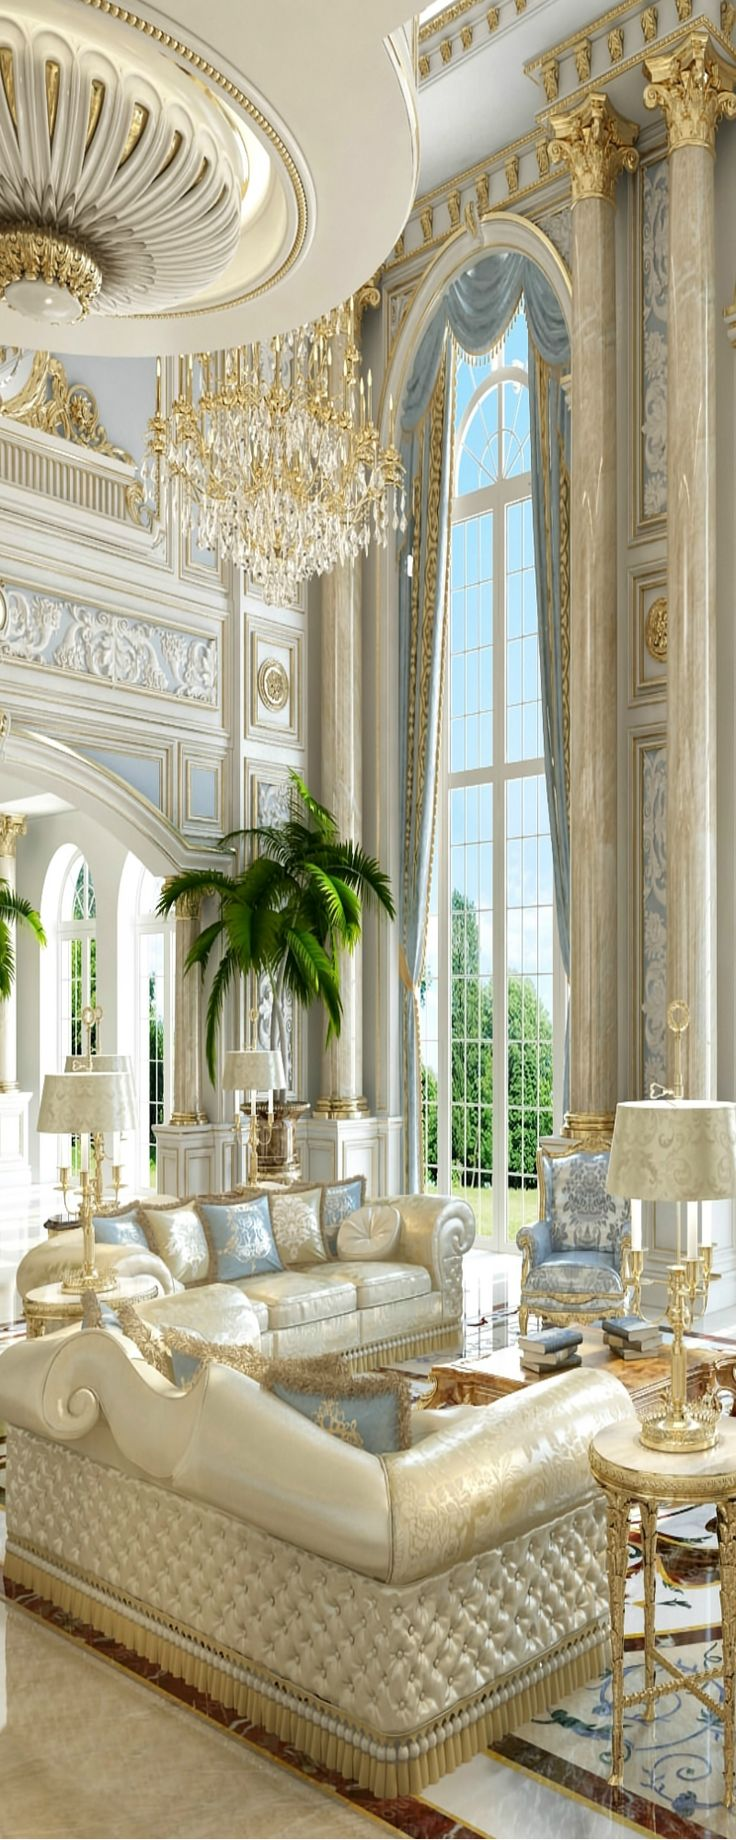 Top Luxury Interior Designers London: 17 Best Ideas About Interior Columns On Pinterest